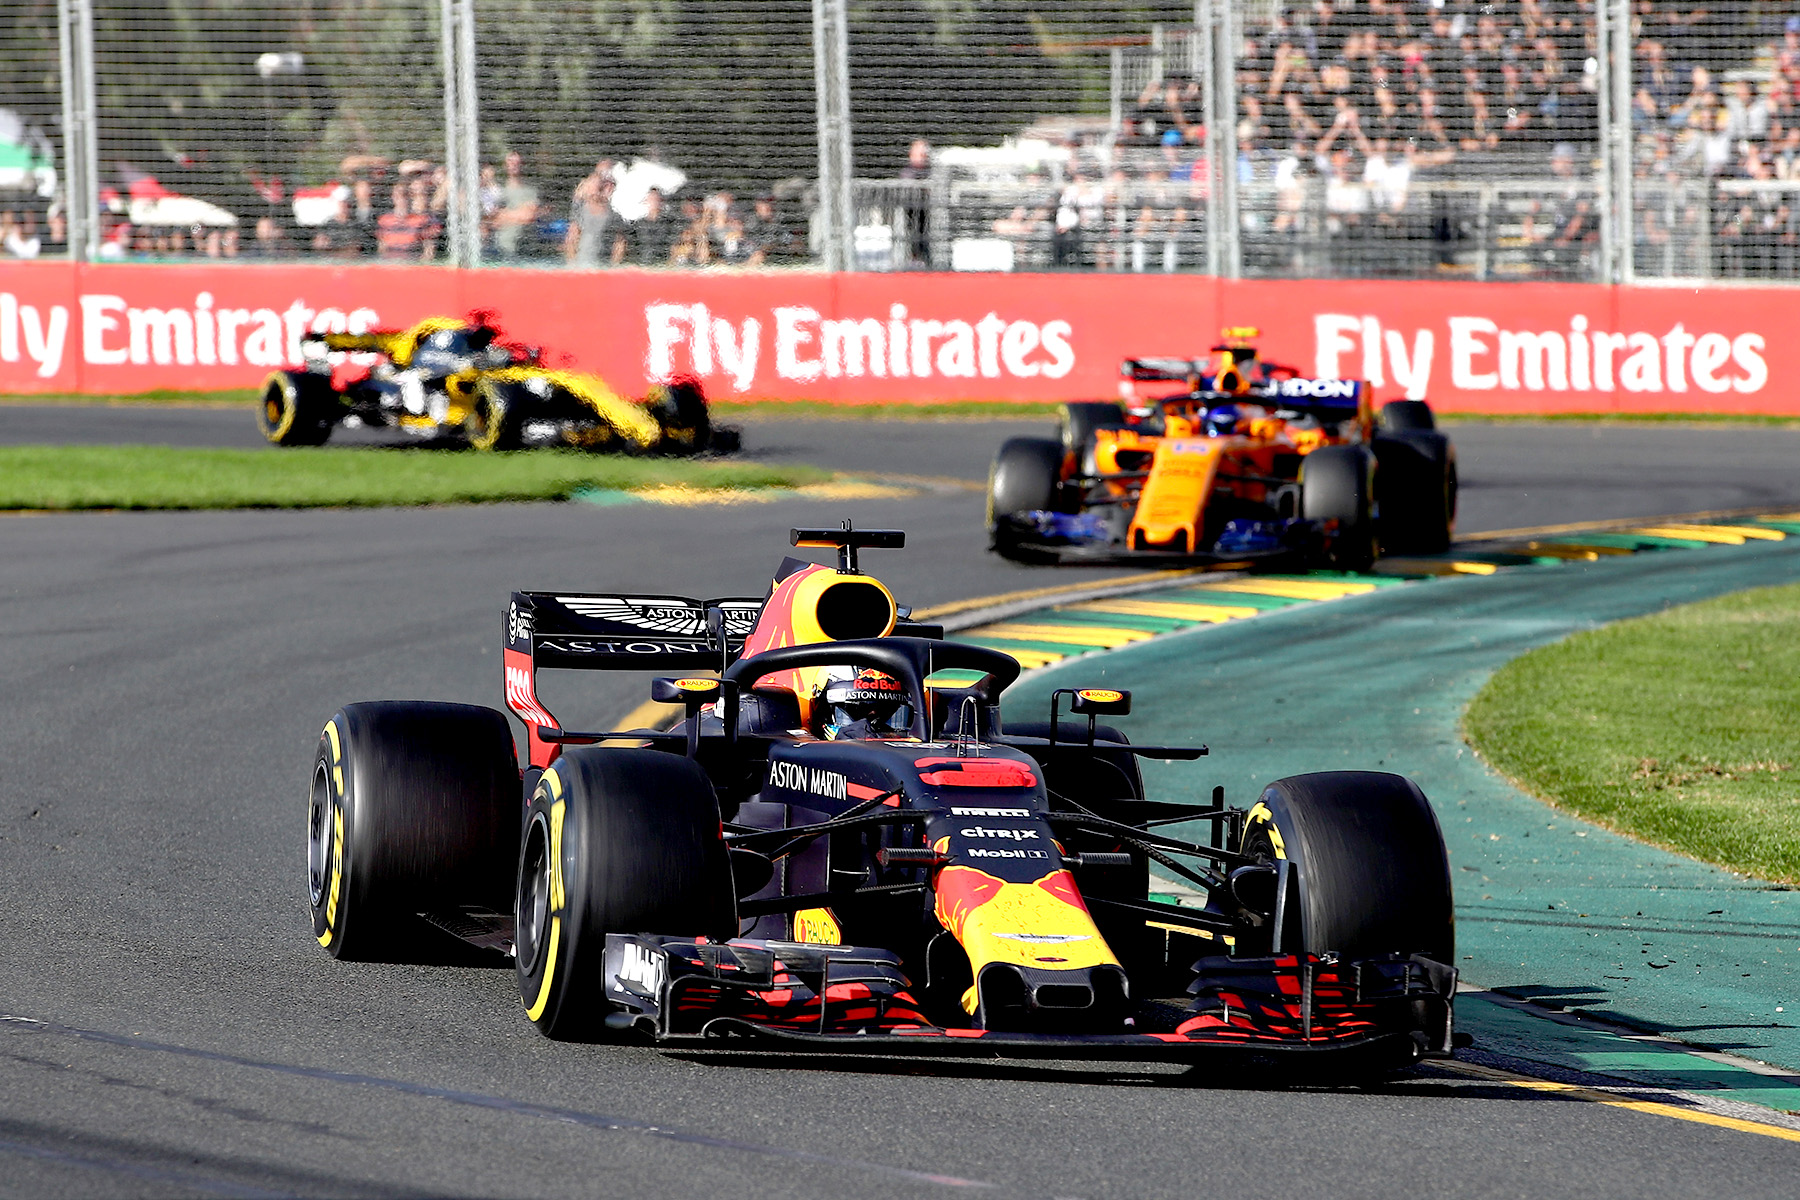 Daniel Ricciardo on track during the 2017 Australian Grand Prix.